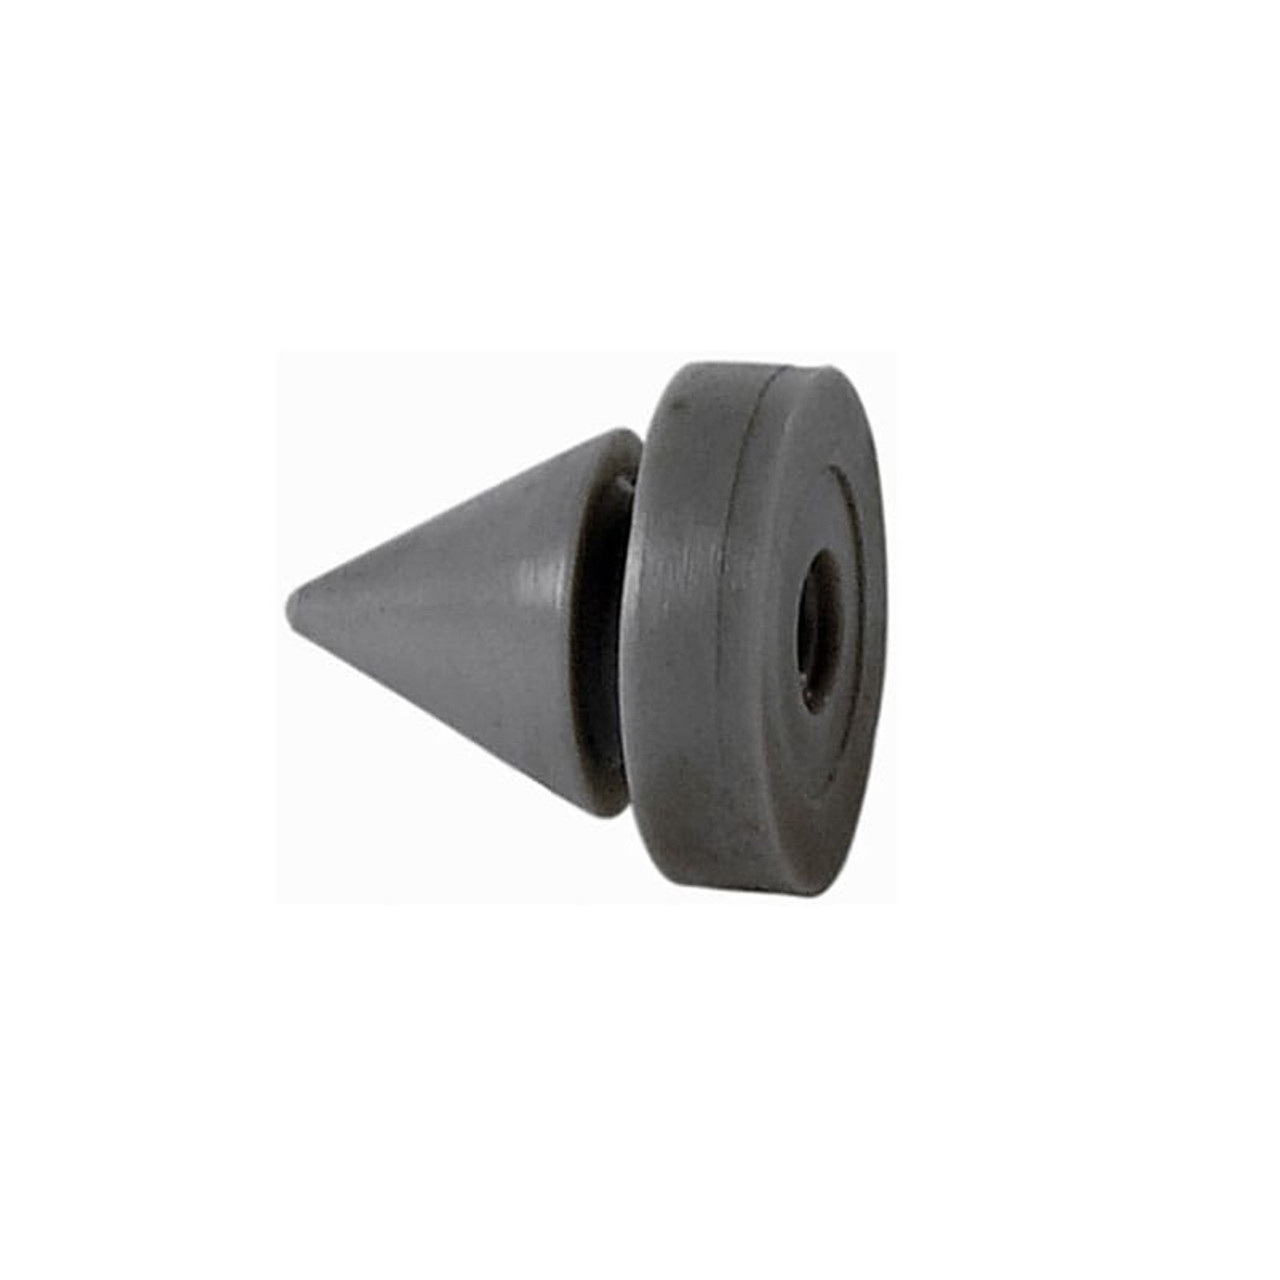 PDQ Silencer - Metal Doors (Box of 100) (904000) - Image 1  sc 1 st  Harbor City Supply & PDQ Metal Door Silencers - Rubber Easy to Install